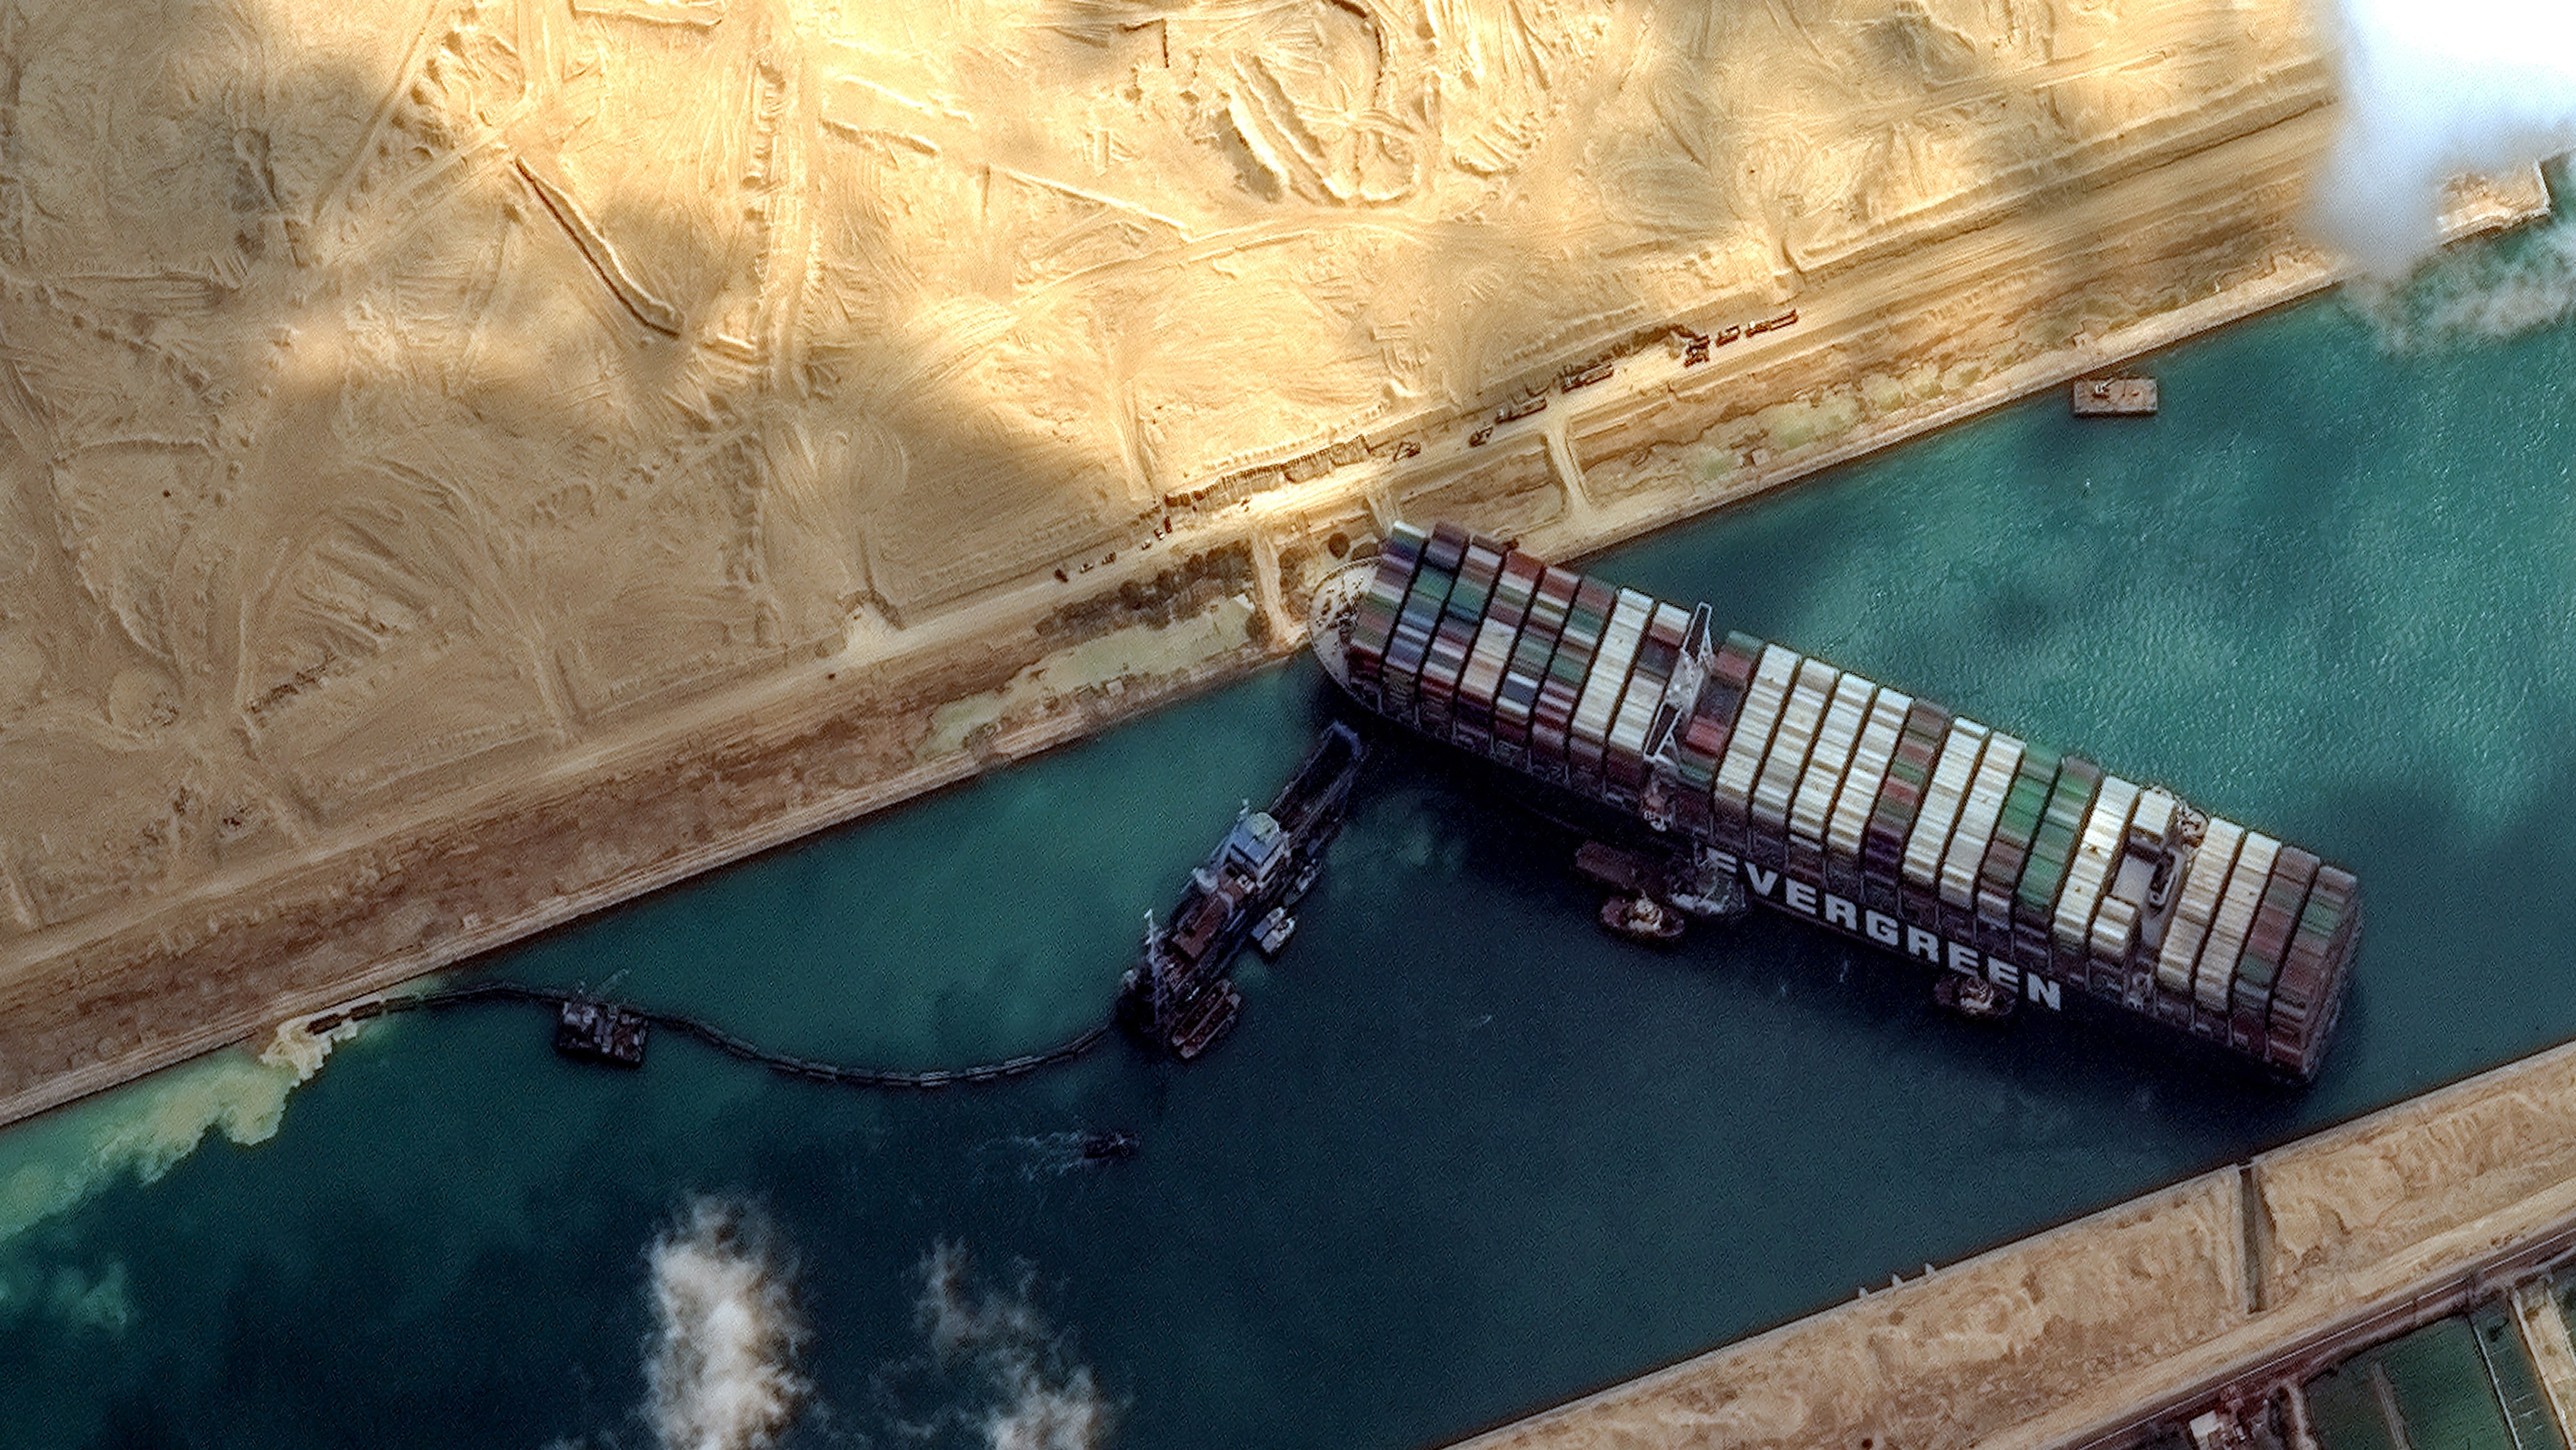 STUCK SHIP EVER GIVEN, SUEZ CANAL -- MARCH 26, 2021:  Maxars WorldView-2 collected new high-resolution satellite imagery of the Suez canal and the container ship (EVER GIVEN) that remains stuck in the canal north of the city of Suez, Egypt.